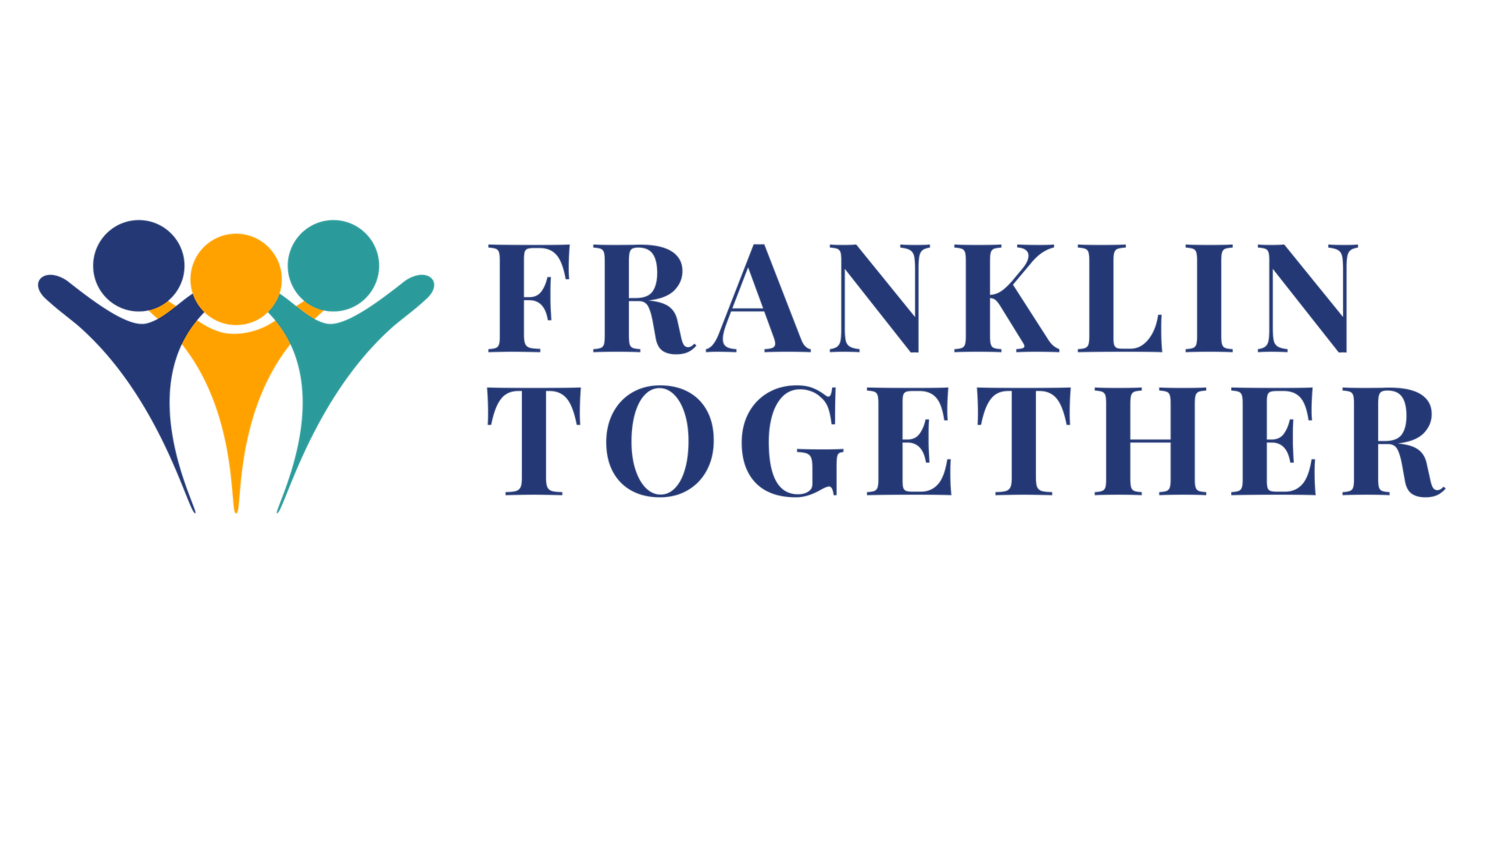 Franklin Together